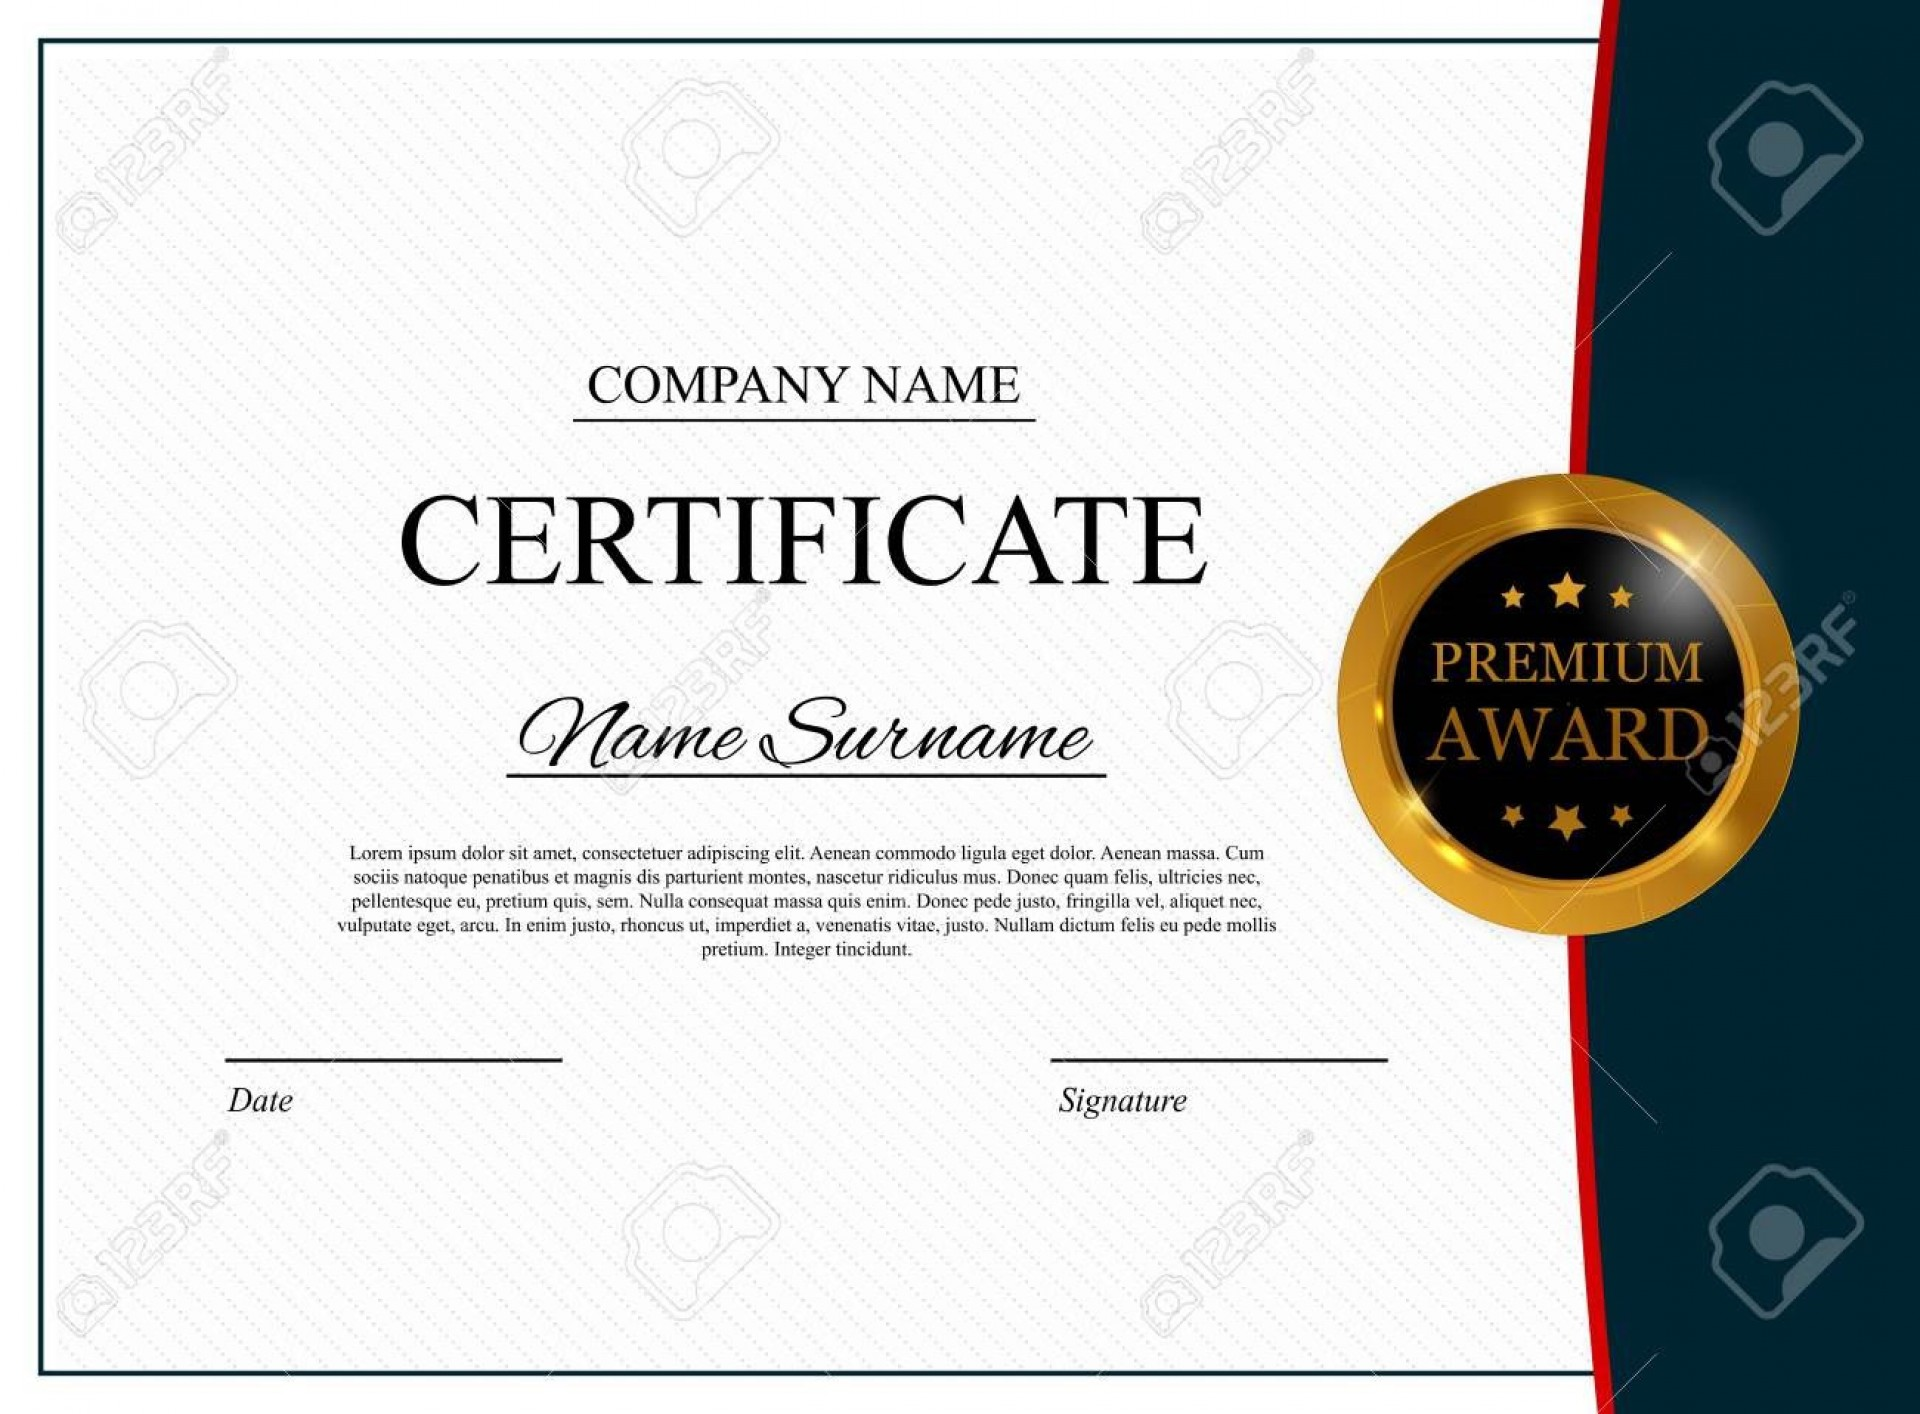 004 Exceptional Blank Award Certificate Template High Definition  Printable Math Editable Free1920